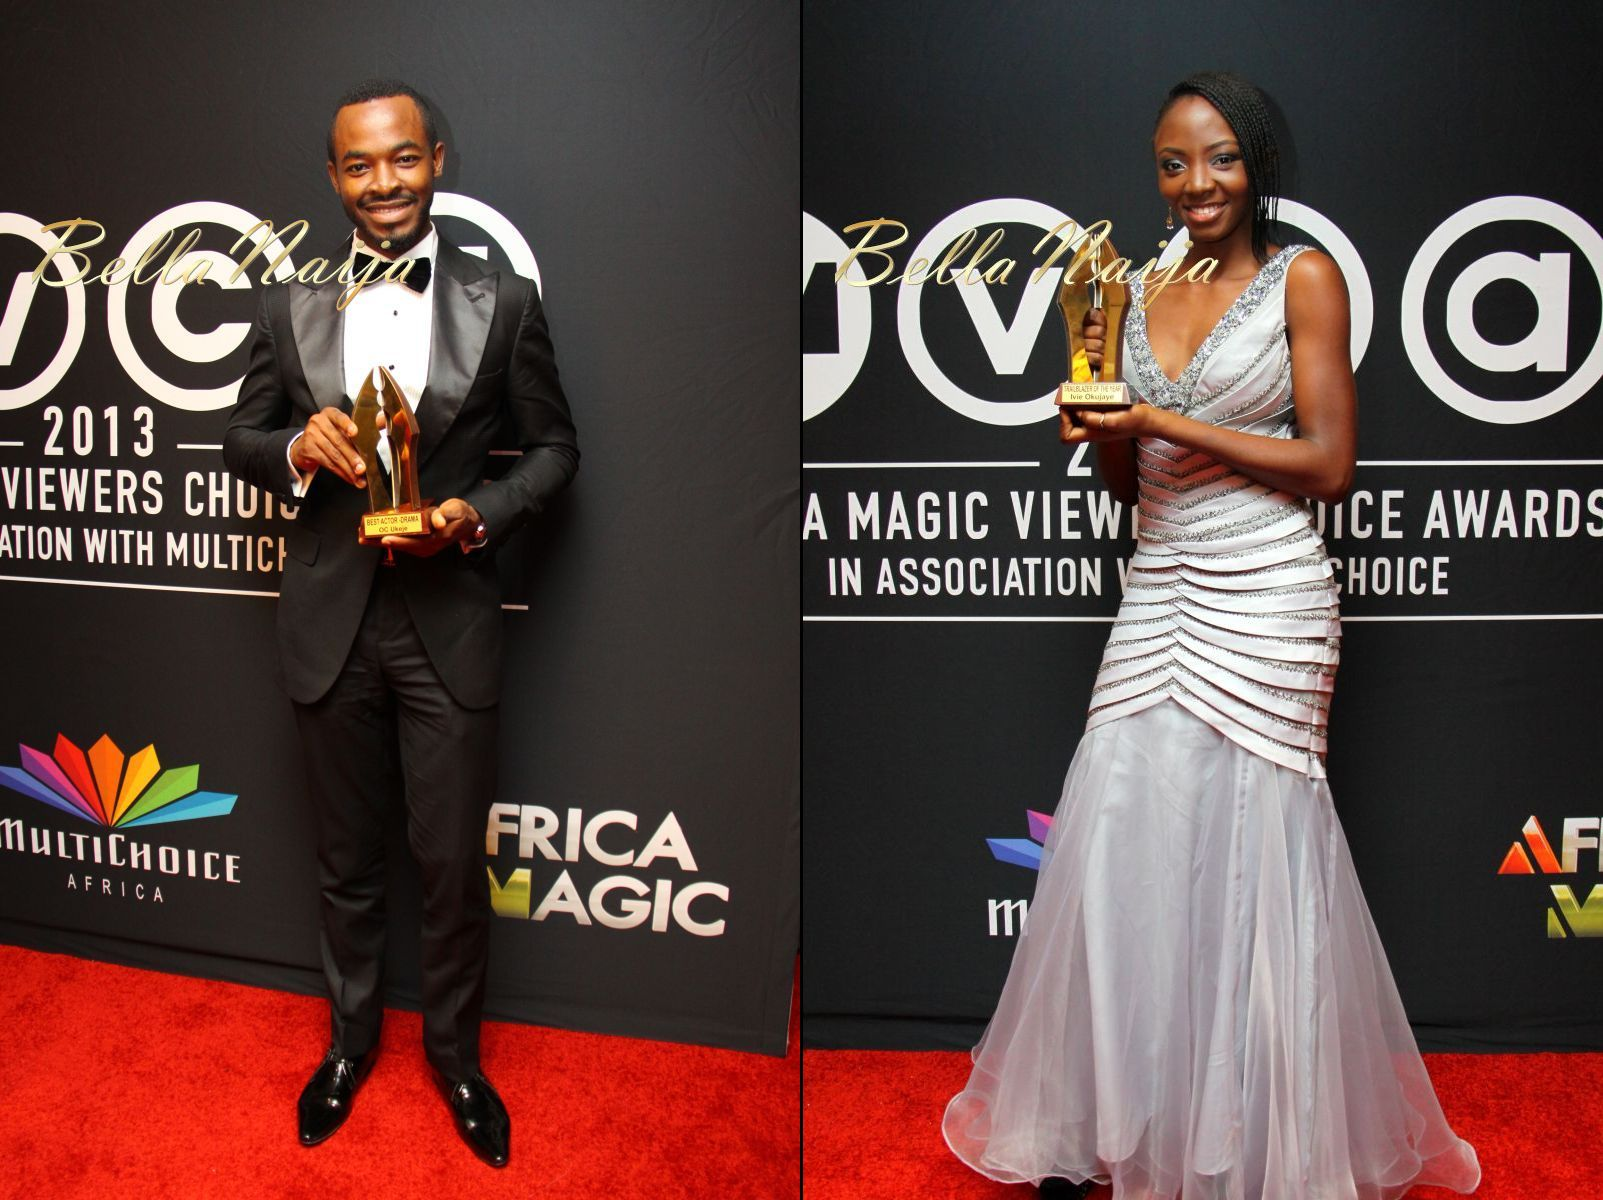 2014 Africa Movie Awards